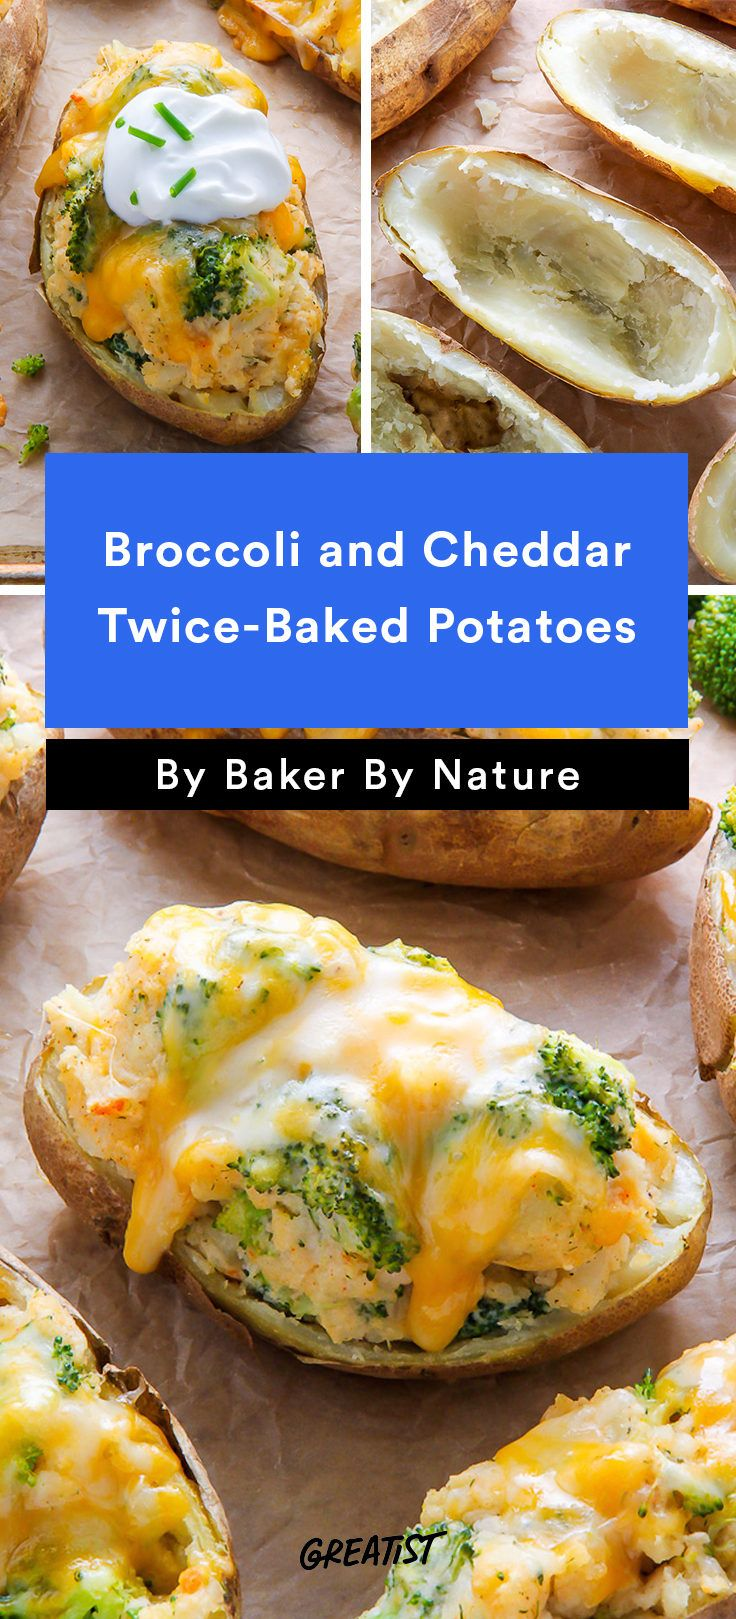 5. Broccoli and Cheddar Twice-Baked Potatoes  #Greatist http://greatist.com/eat/recipes-to-make-inside-a-baked-potato